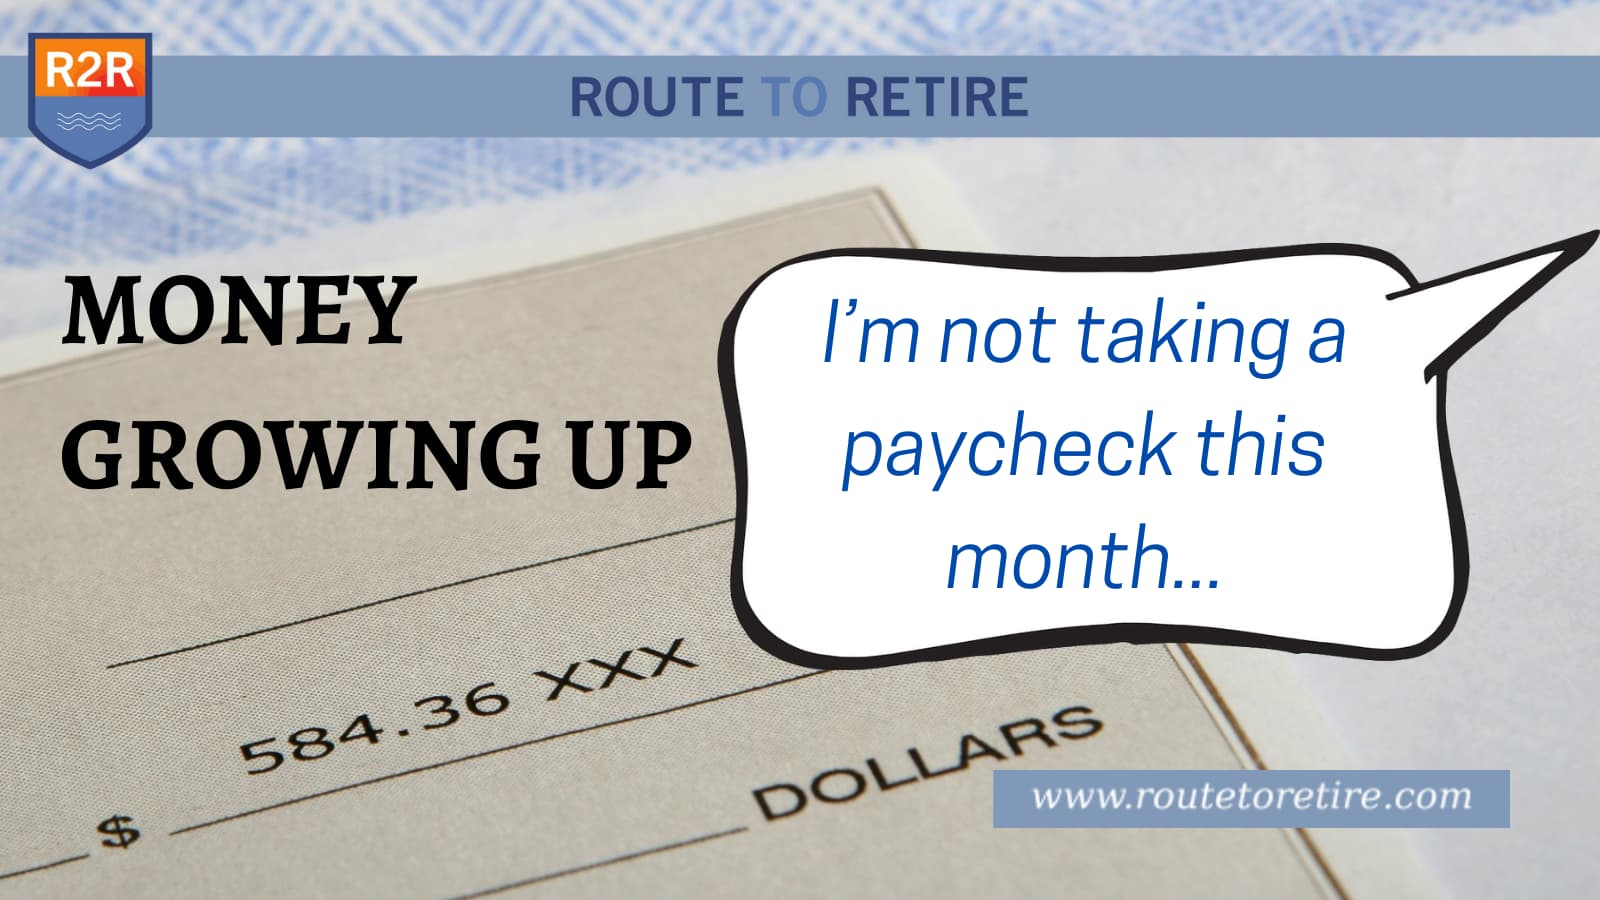 Money Growing Up – I'm Not Taking a Paycheck This Month